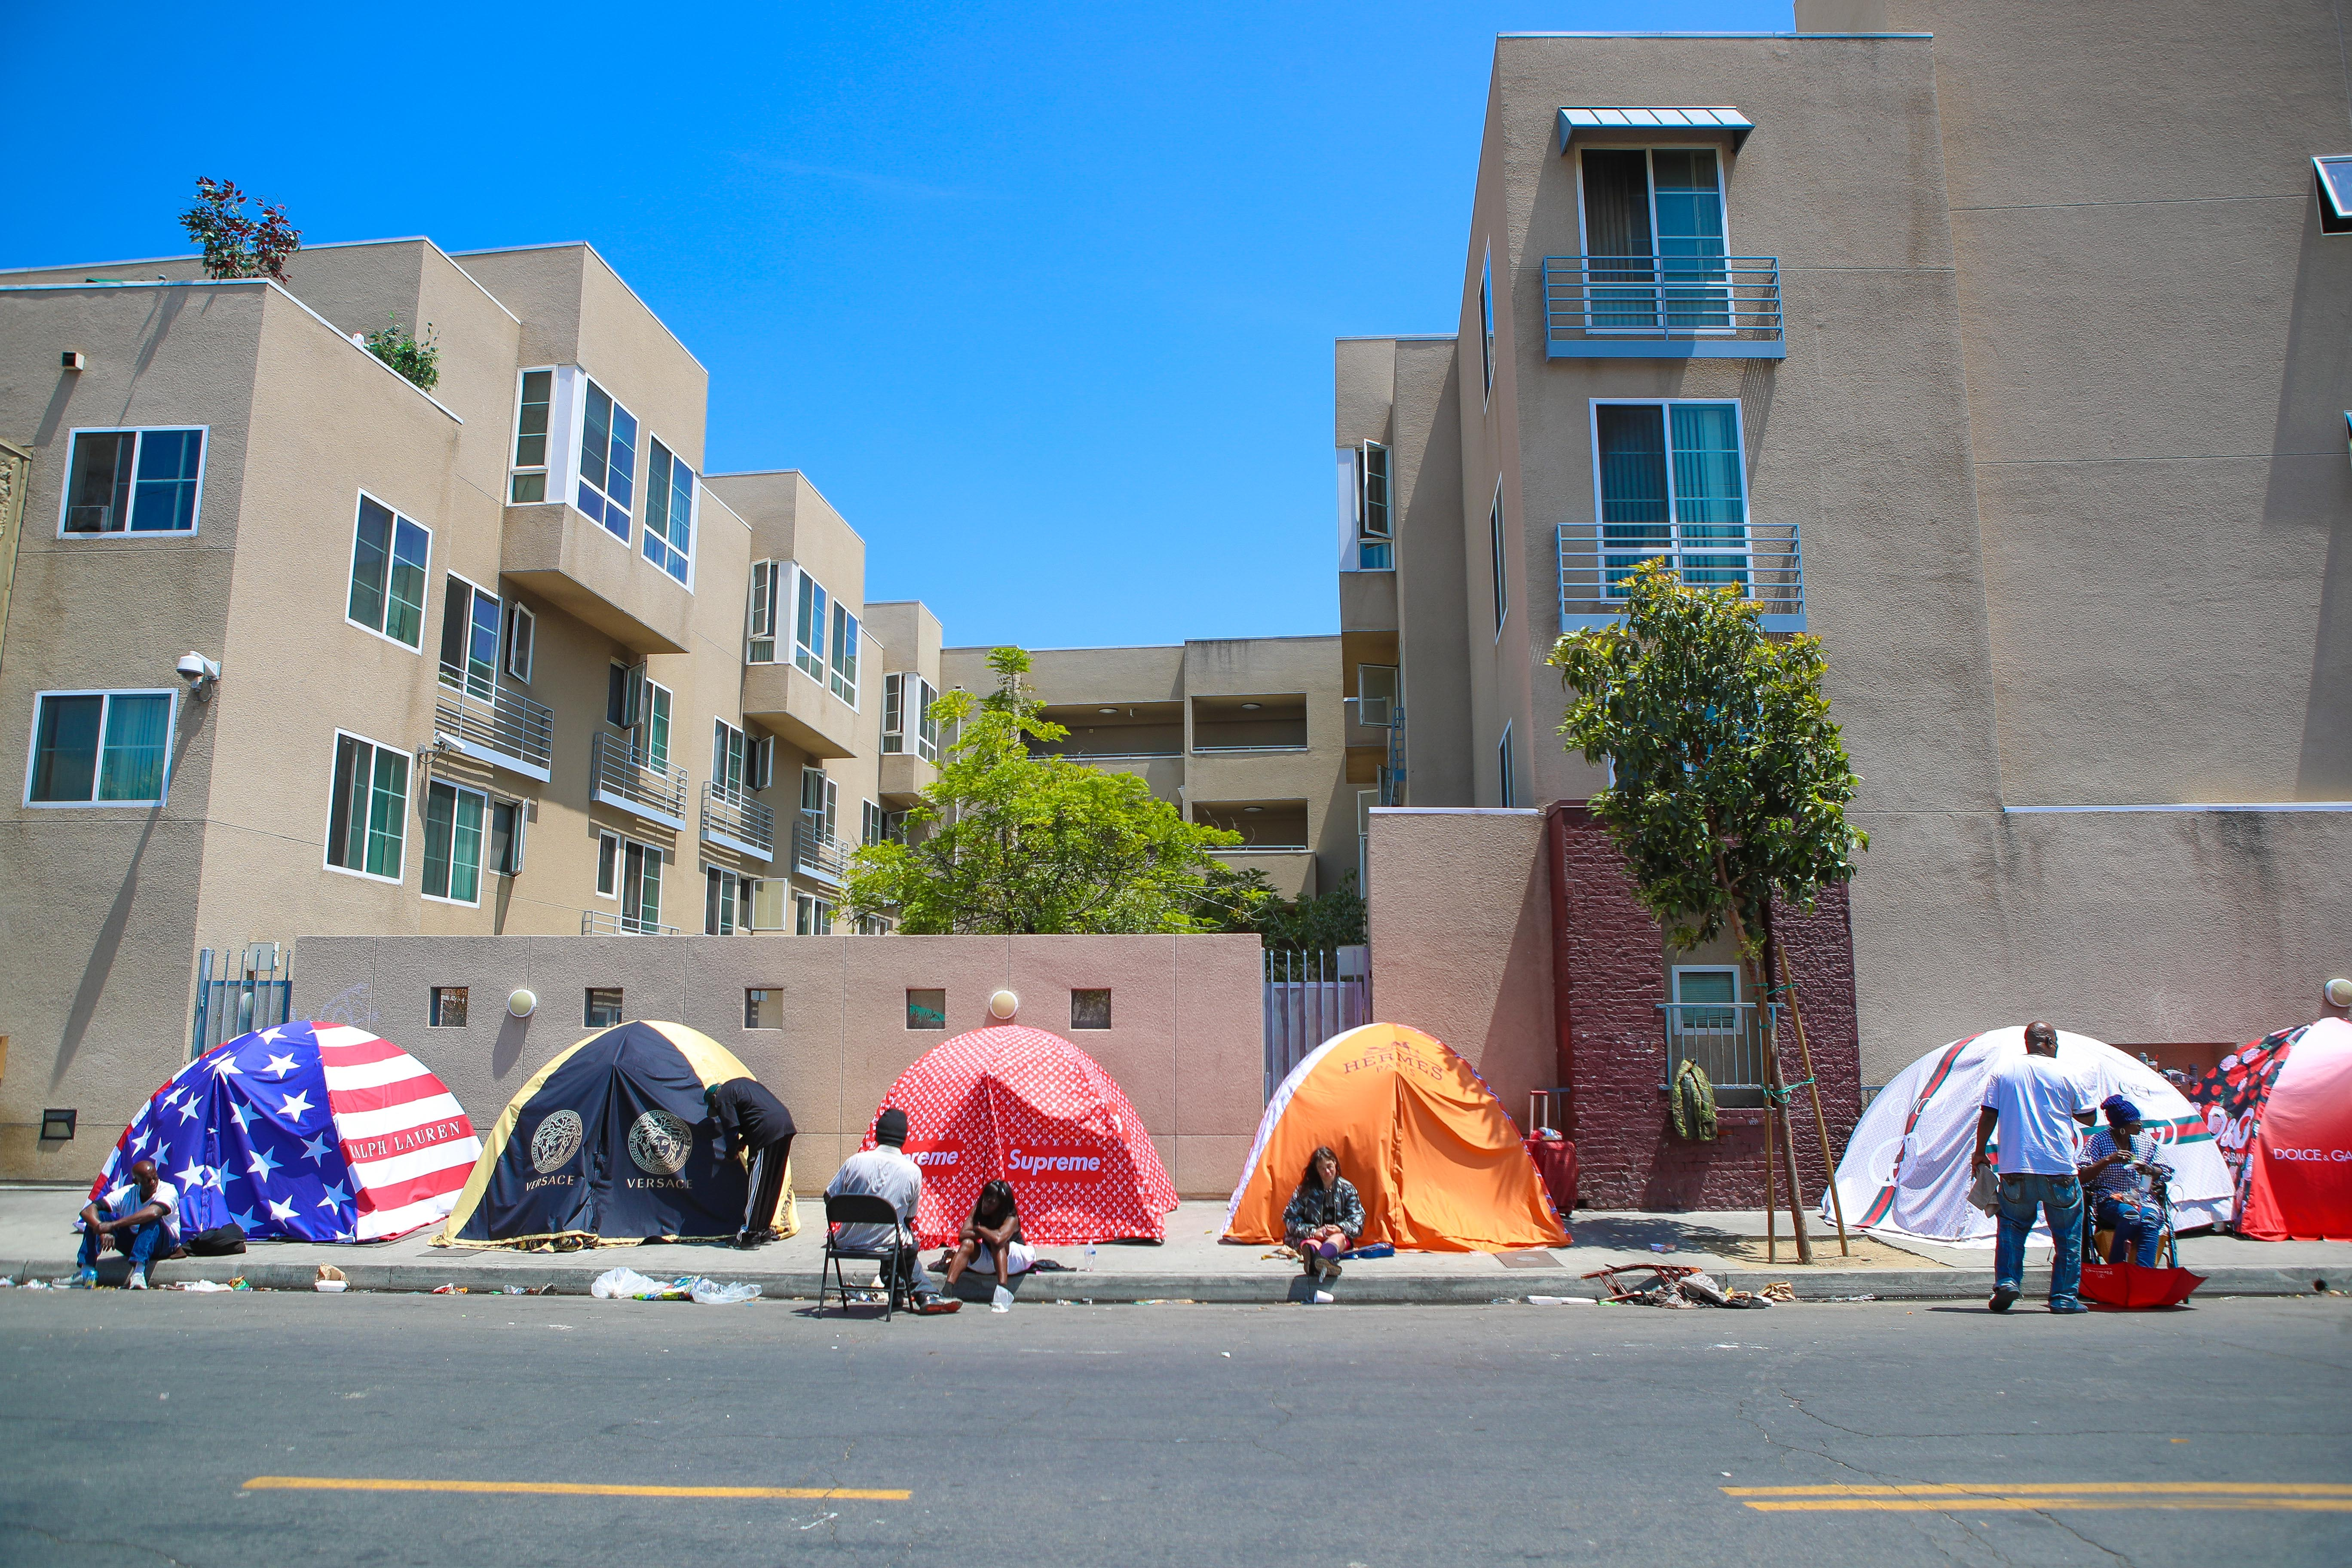 "British Artist Chemical X Unveils His Controversial ""Skid Rodeo Drive"" Initiative In The Homeless Ghetto Of Skid Row Los Angeles"